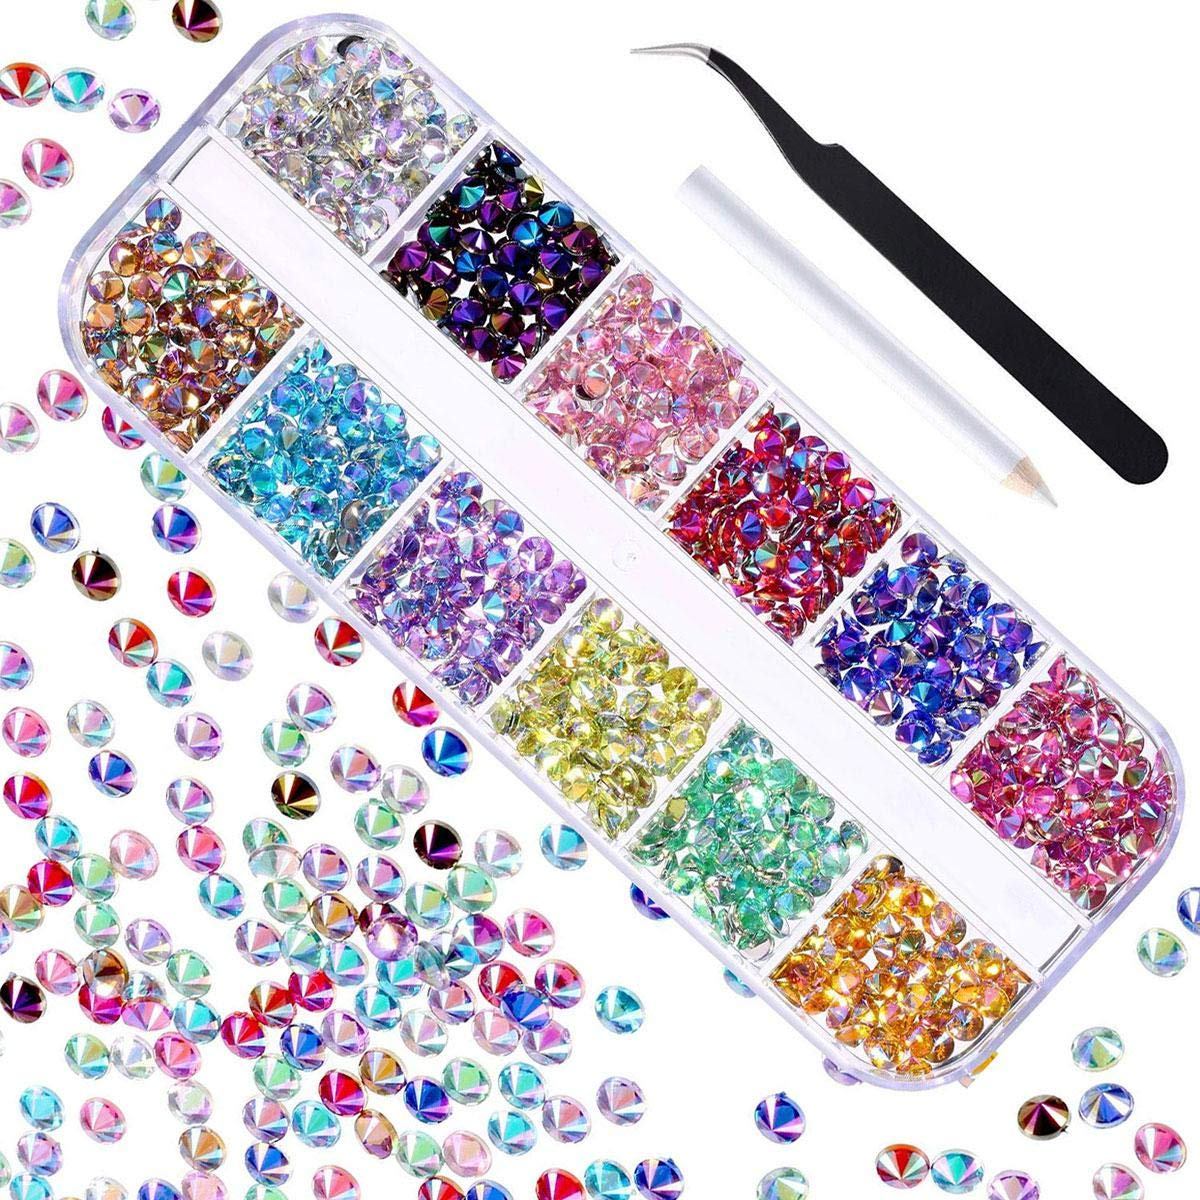 Pawaca 2404Pcs 12 Colors Kit Nail Rhinestones with 1 Pick up Tweezers, Multicolor Nail Gems Decorations Supplies with Storage Box, Crystals for Crafts, Nail Art DIY